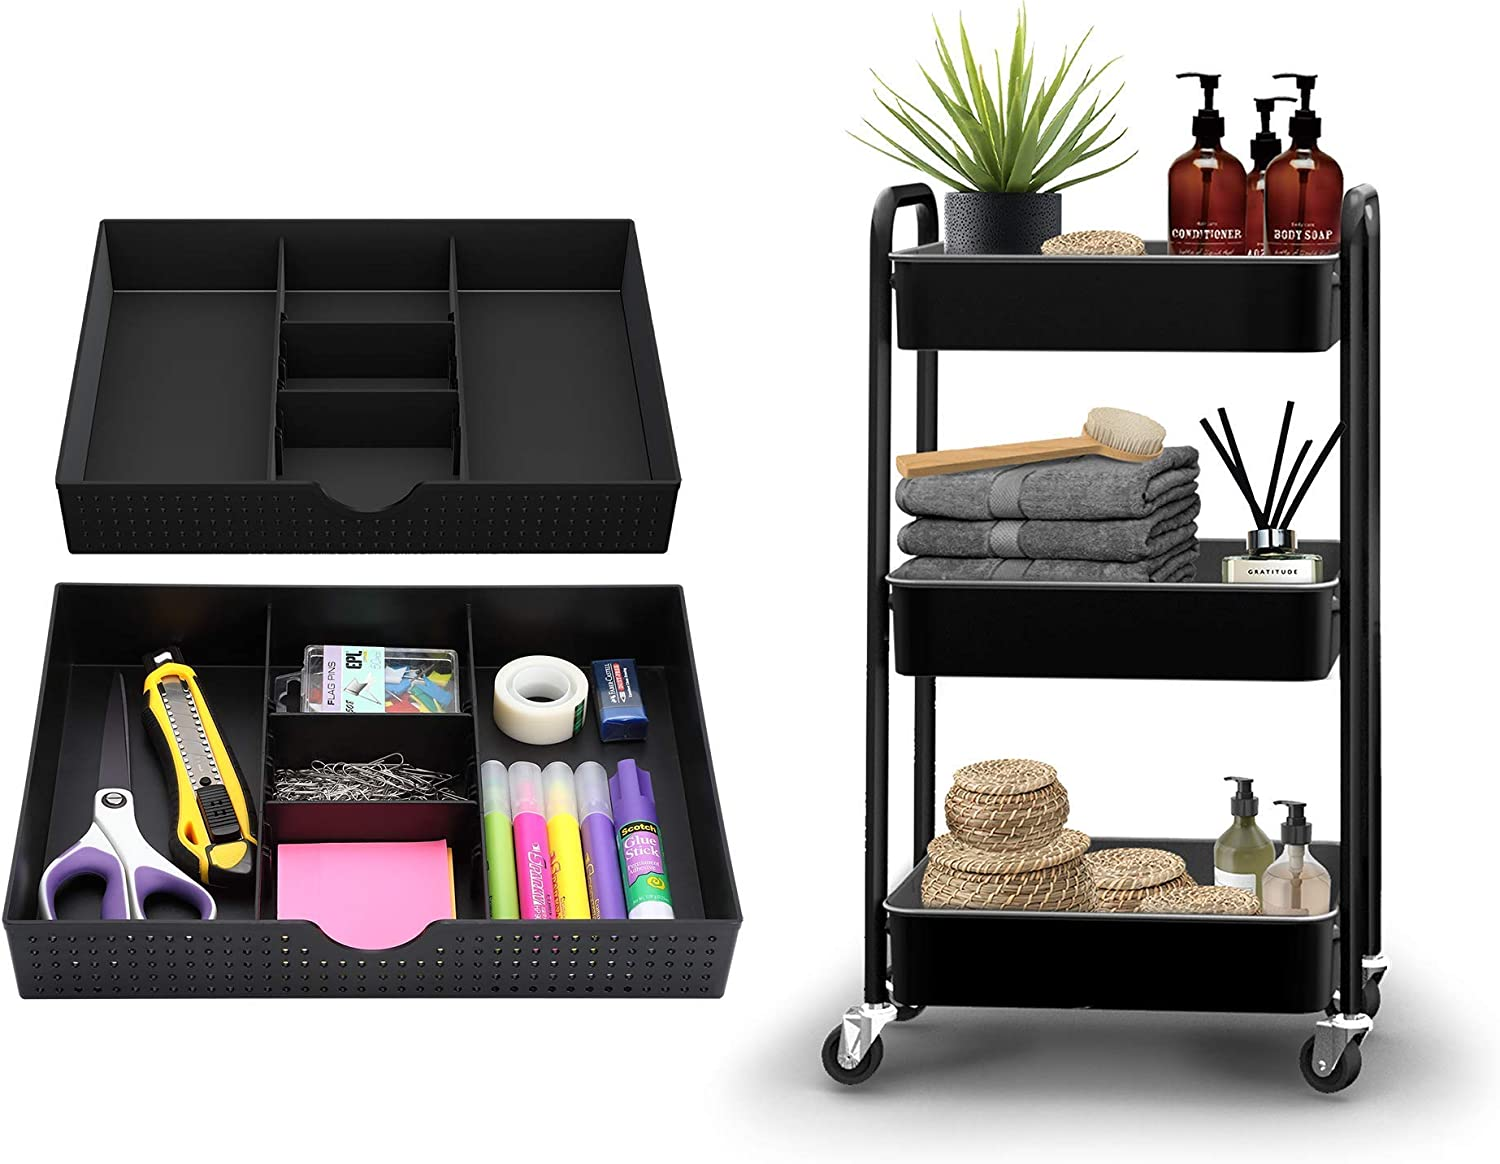 CAXXA 3 Tier Discount mail order Utility Cart - Black w Organizer PK + Desk 67% OFF of fixed price Drawer 2